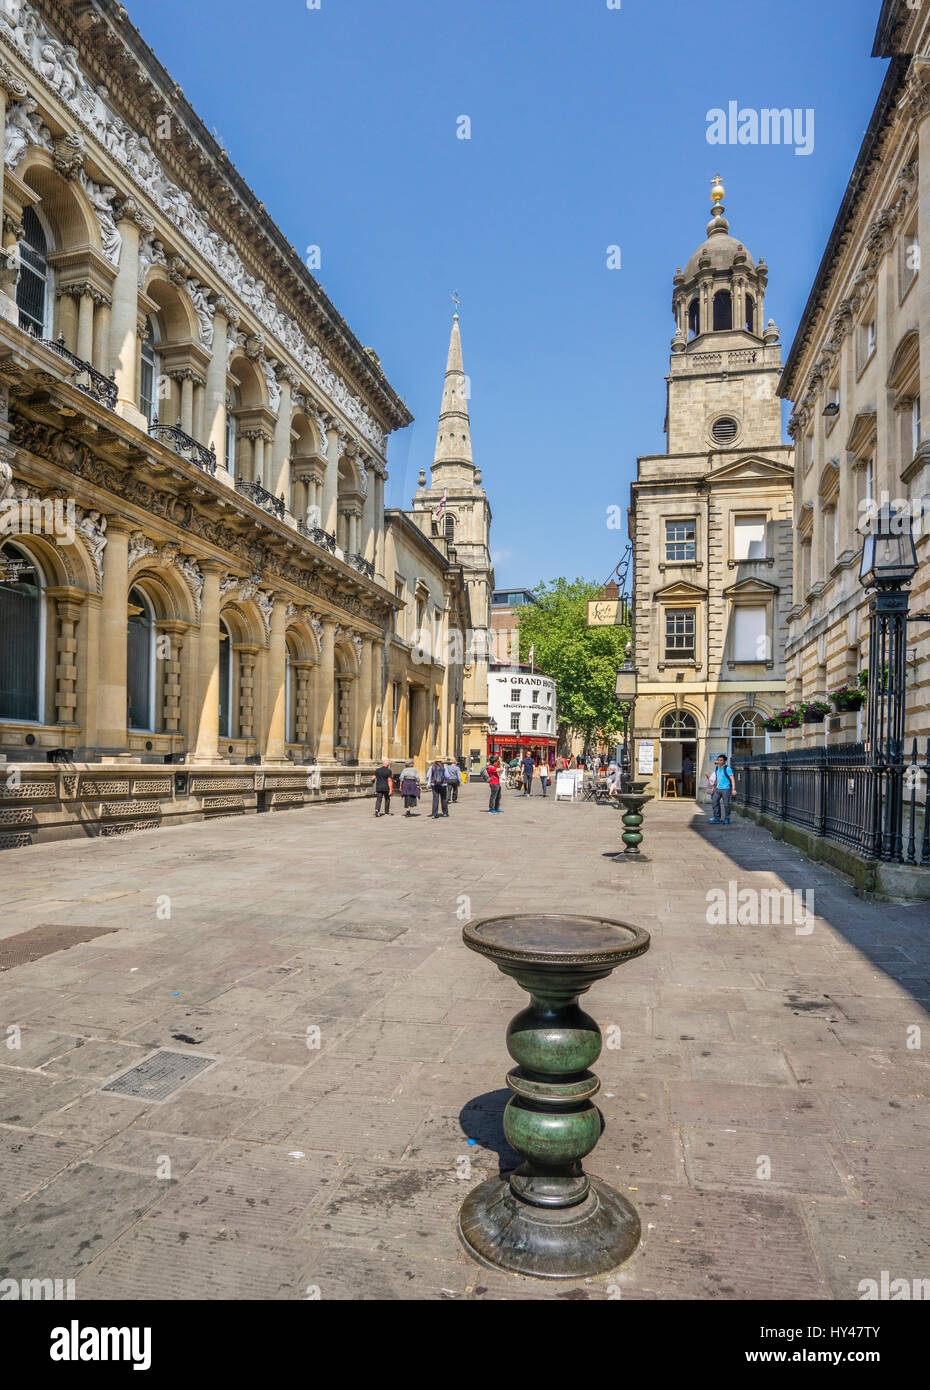 United Kingdom, South West England, Bristol, bronce tables referred as 'nails' at Corn Street in centre - Stock Image